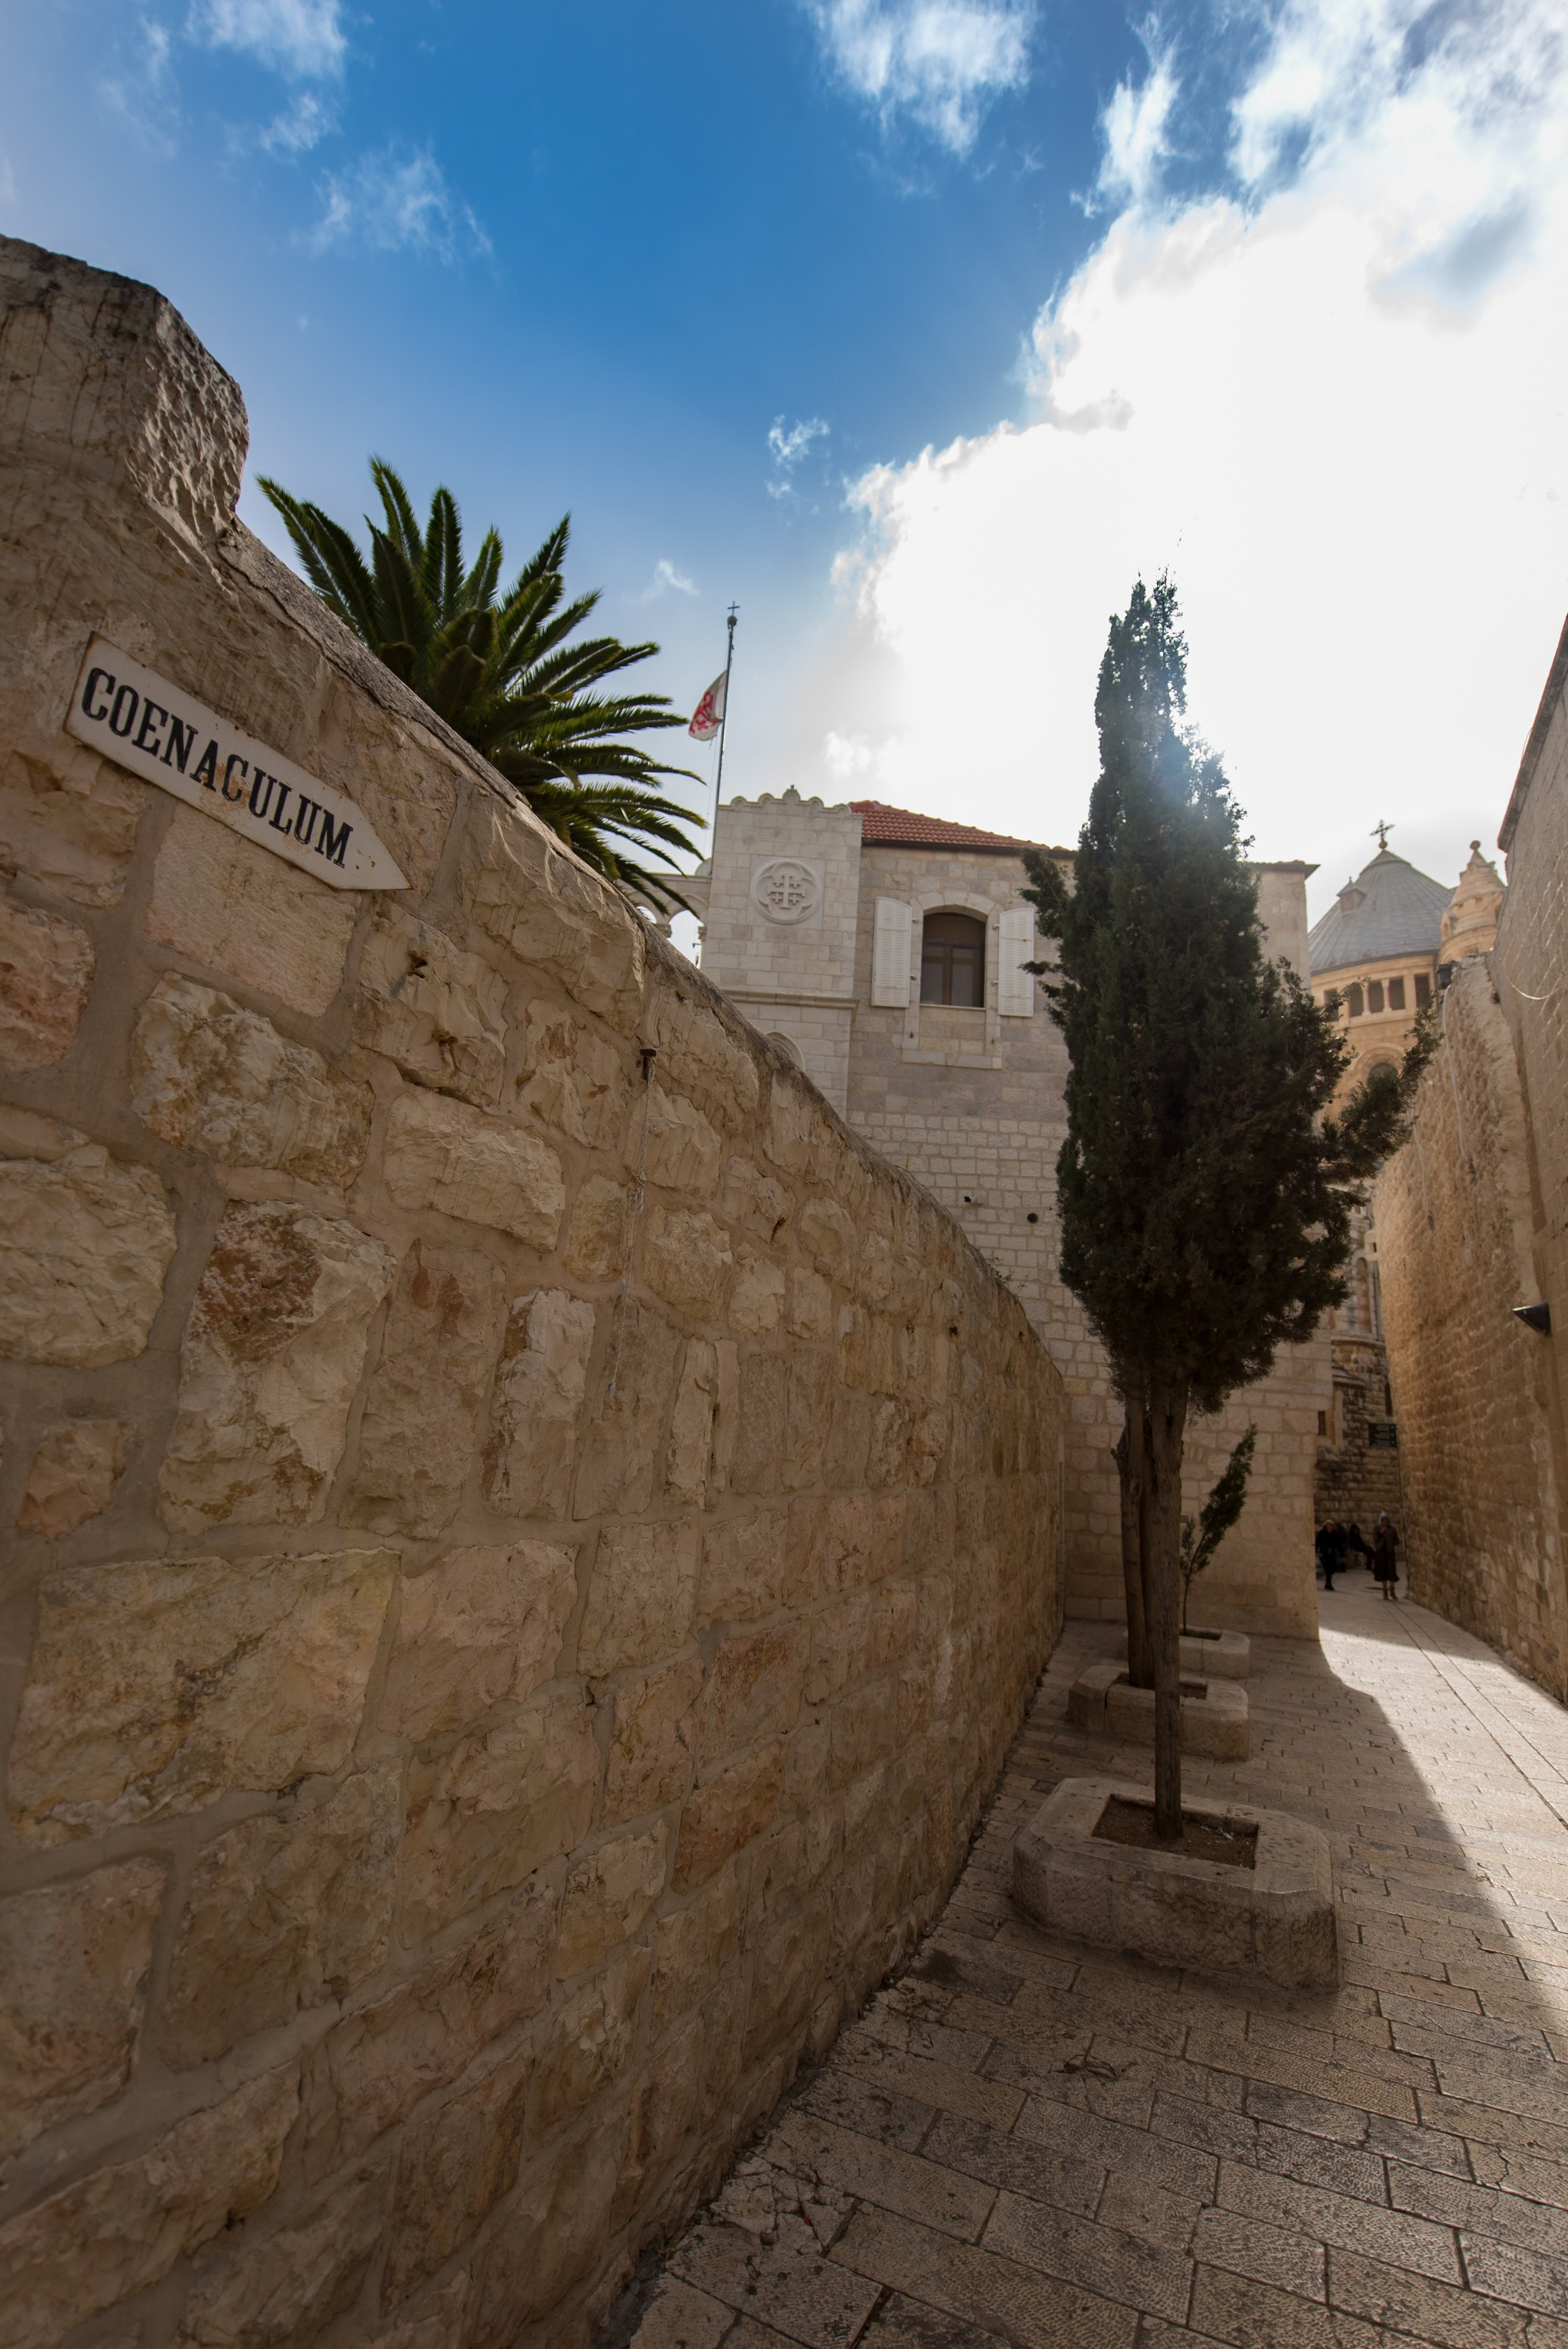 The original room was destroyed, but a Church was built on the site during the Crusader period.